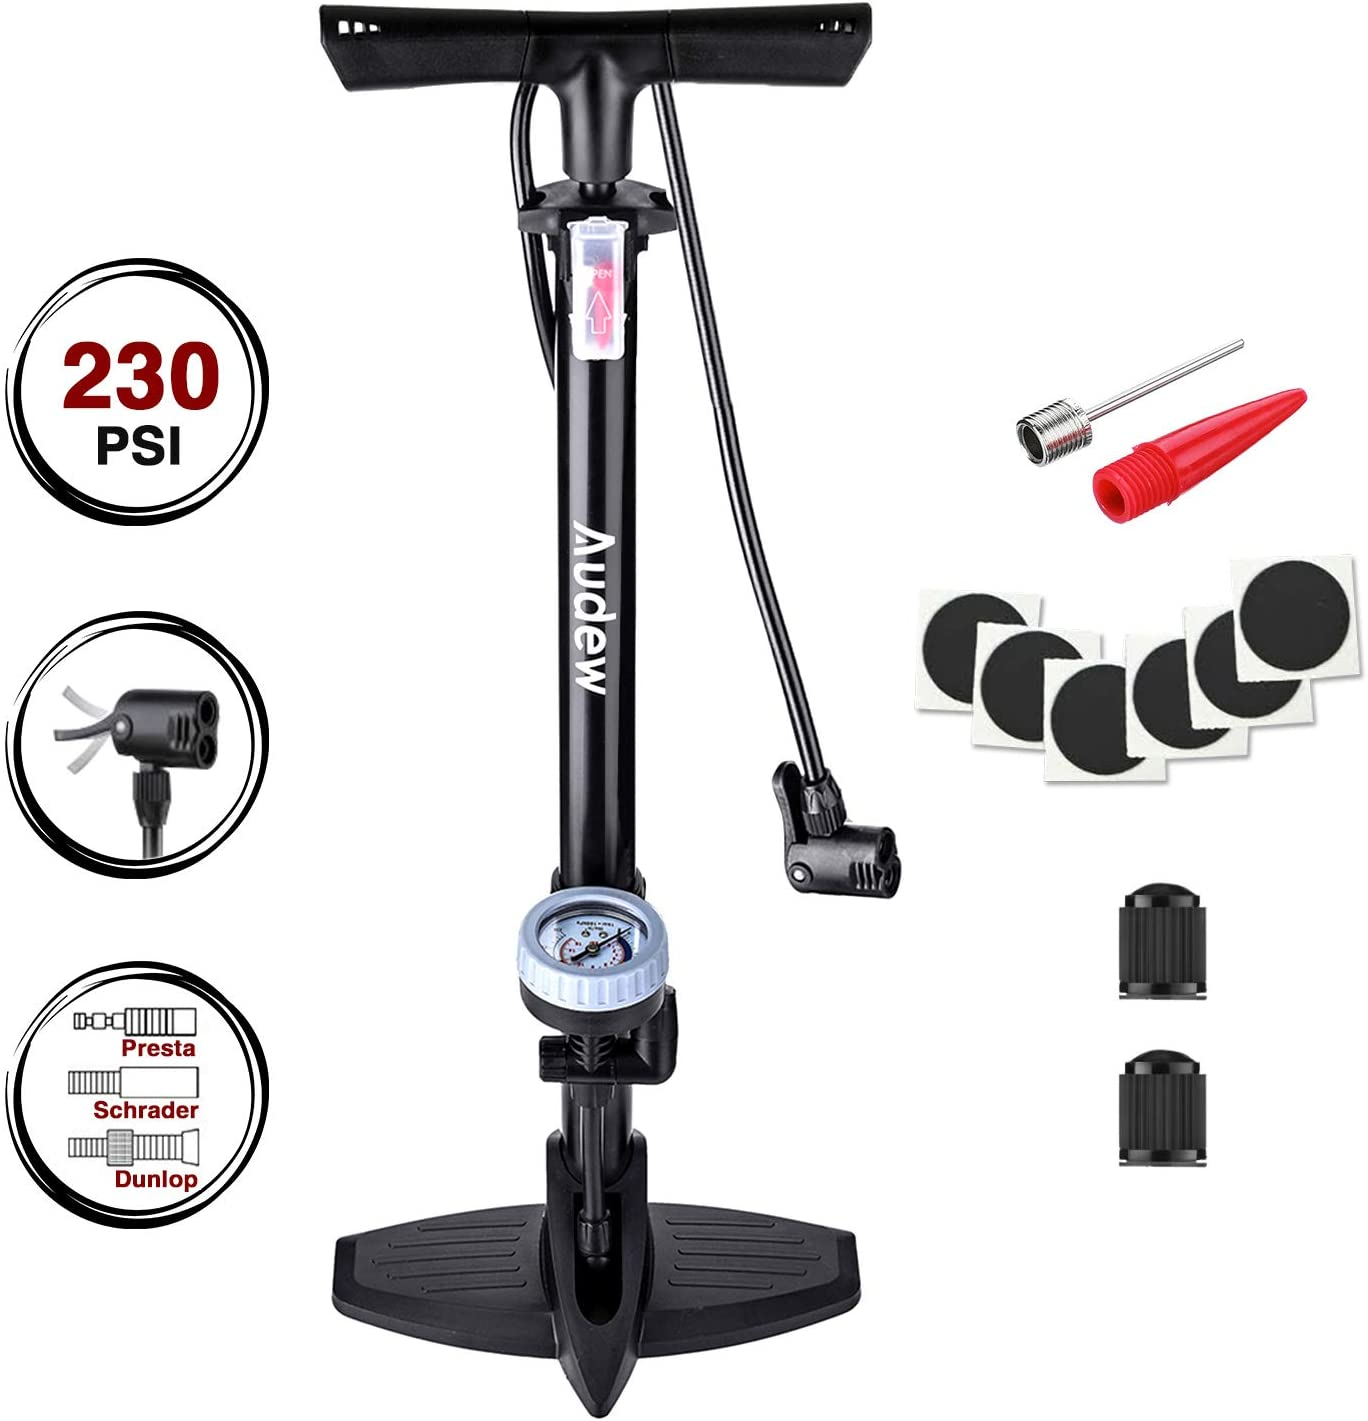 Audew Bicycle Floor Pump